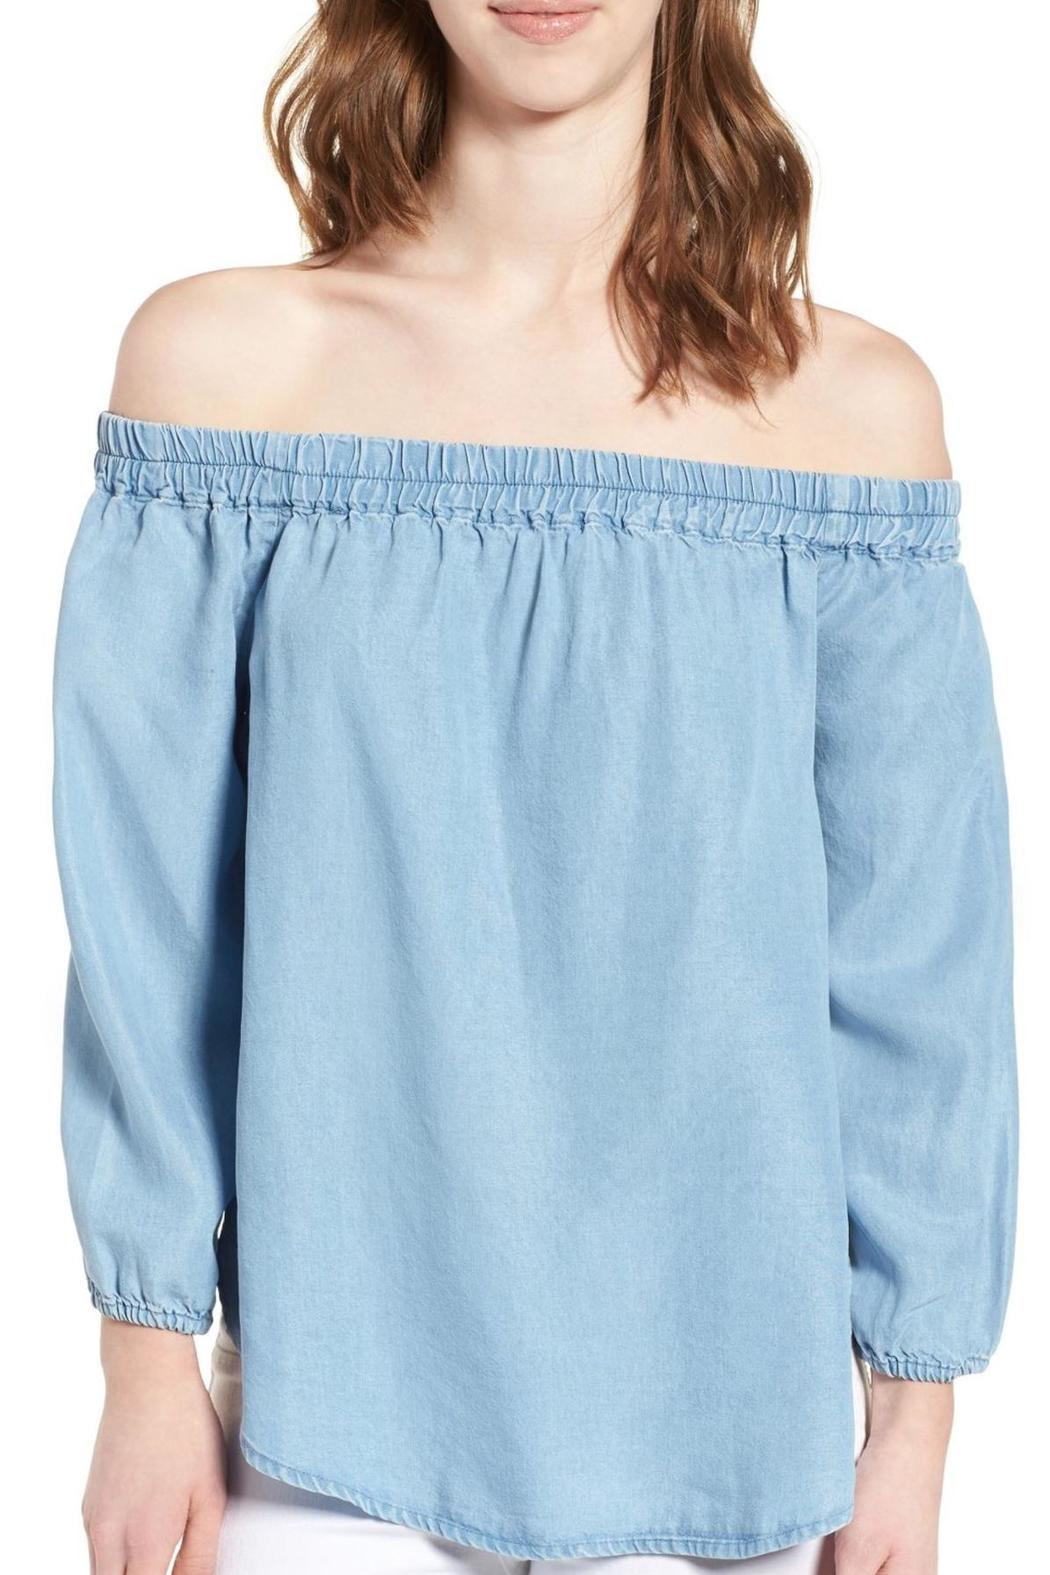 8da27113e5db6 Splendid Chambray Off Shoulder Top from New Jersey by free shop ...